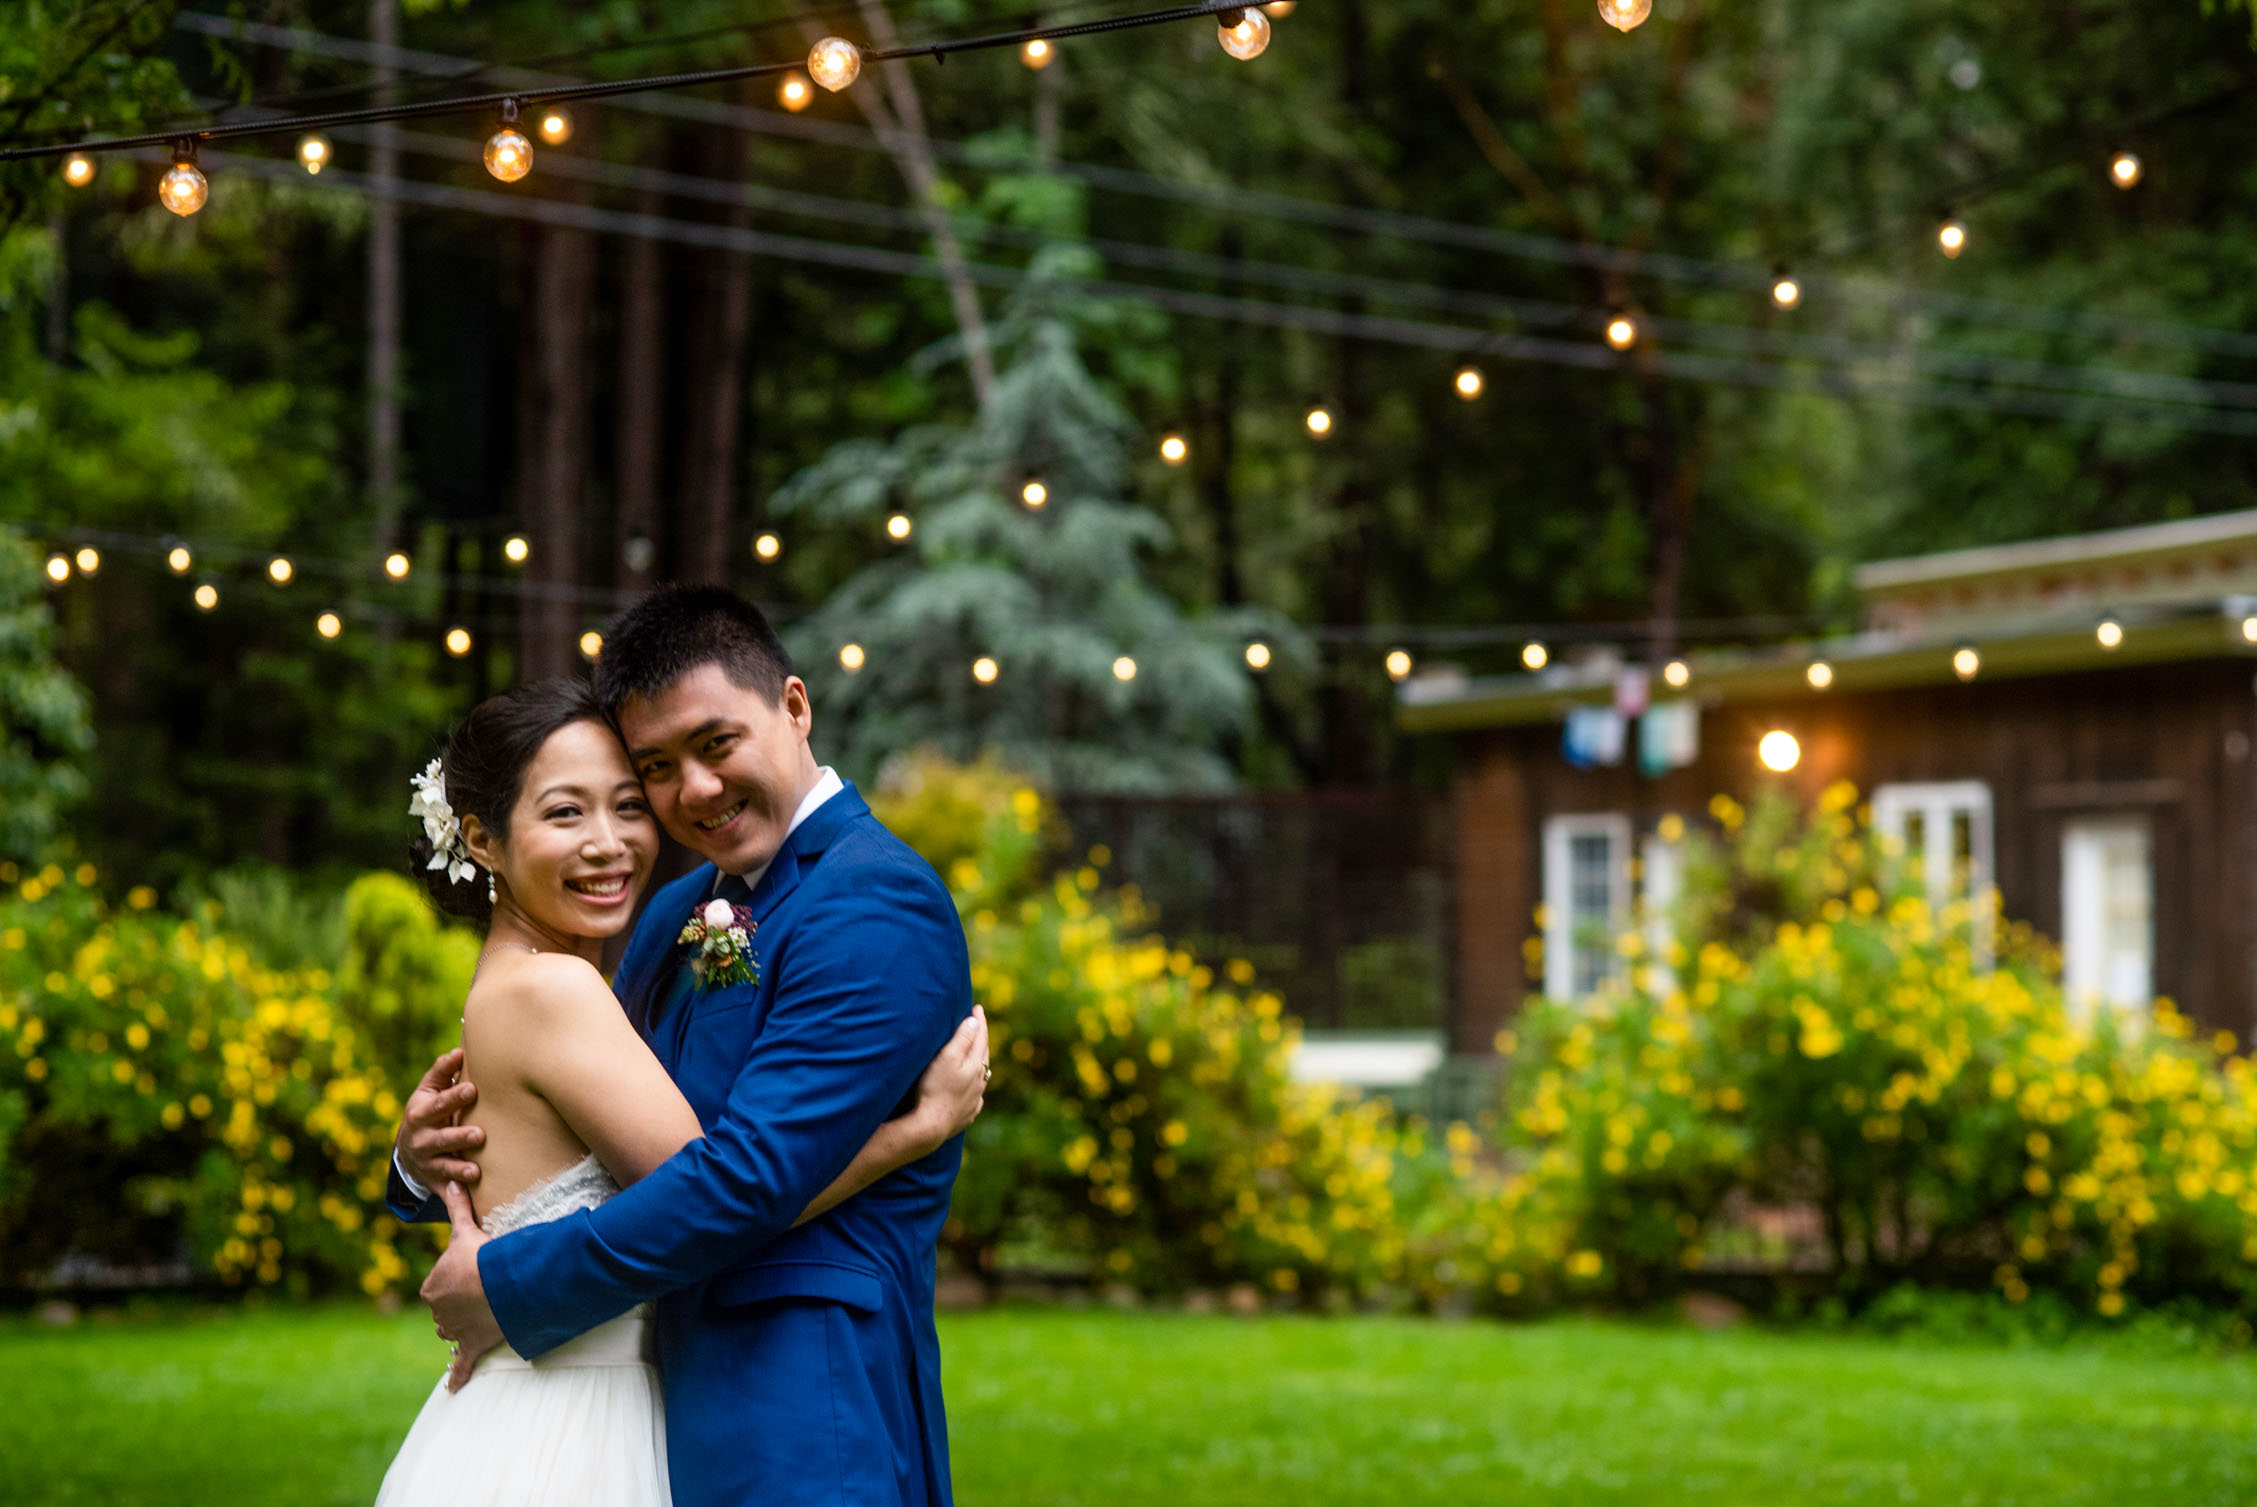 Bride and groom embrace on green lawn with string lights